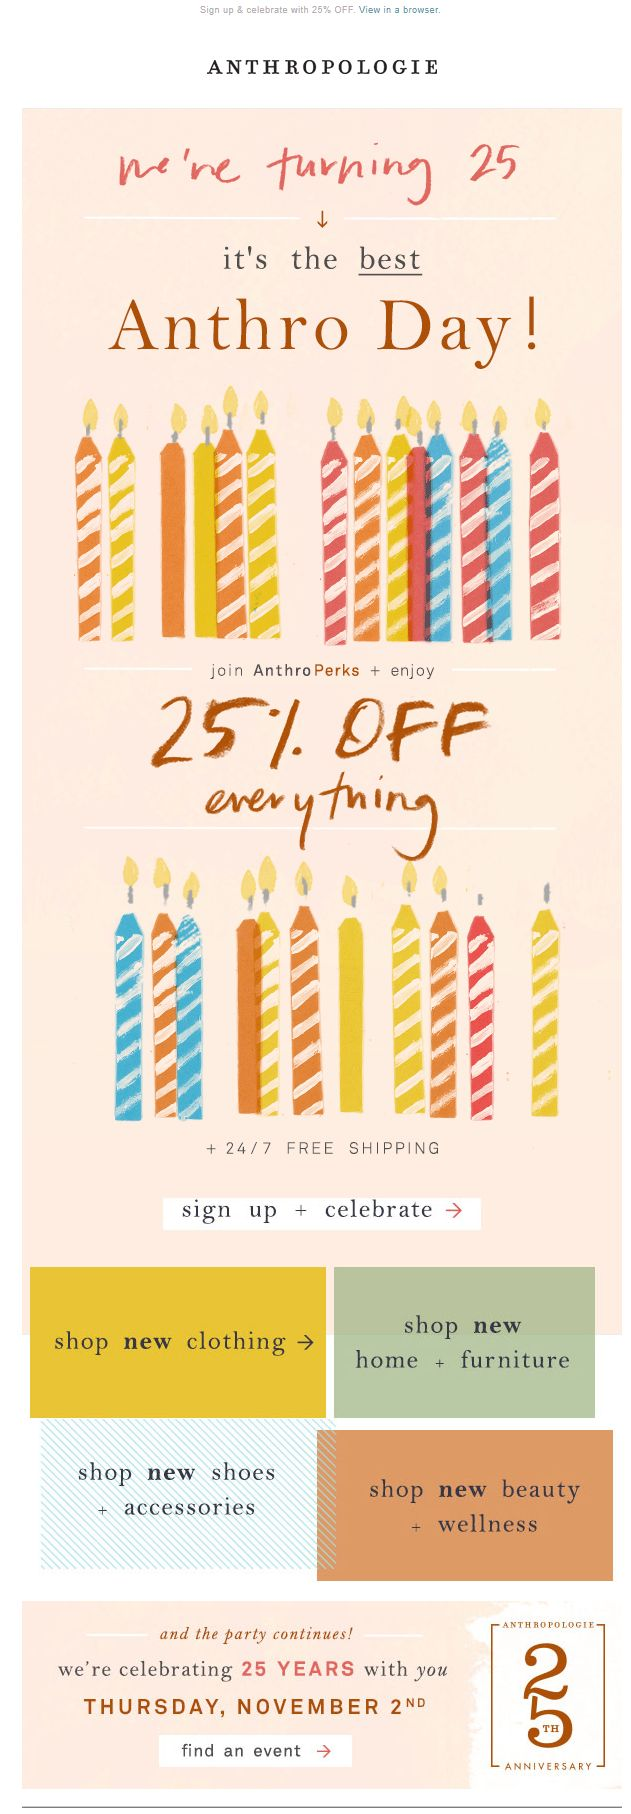 birthday email sign up ; 9ca08cab15f96d9ea127c6b1758b413b